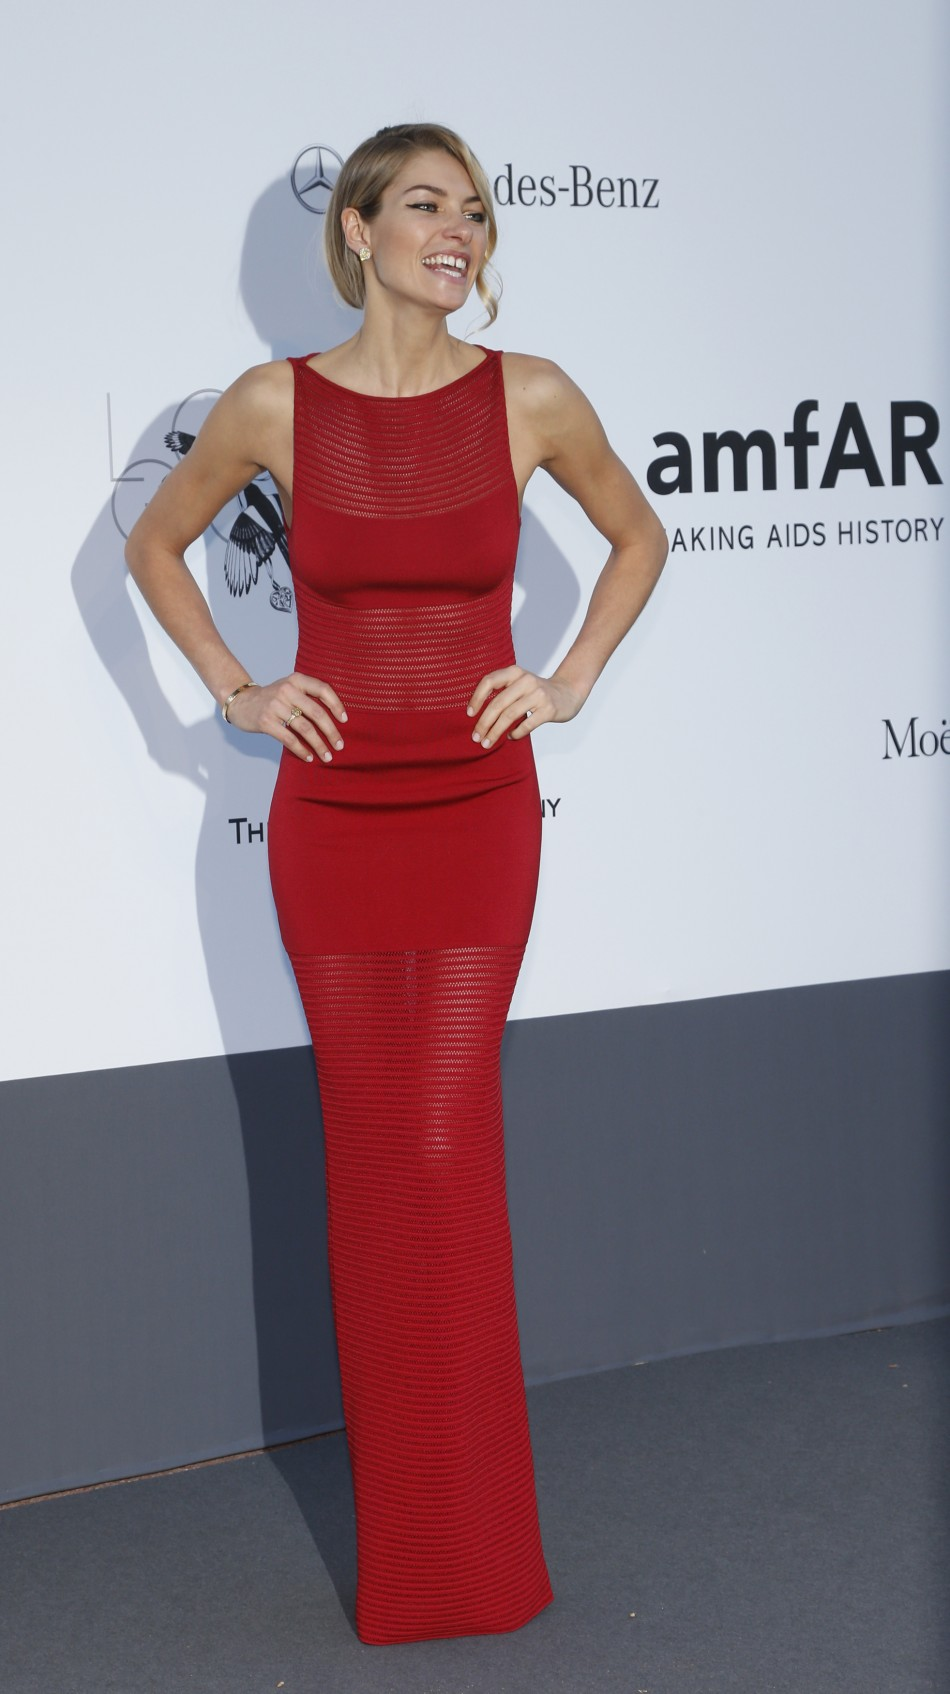 Cannes Film Festival 2013 Celebrities on Red Carpet for amfAR event